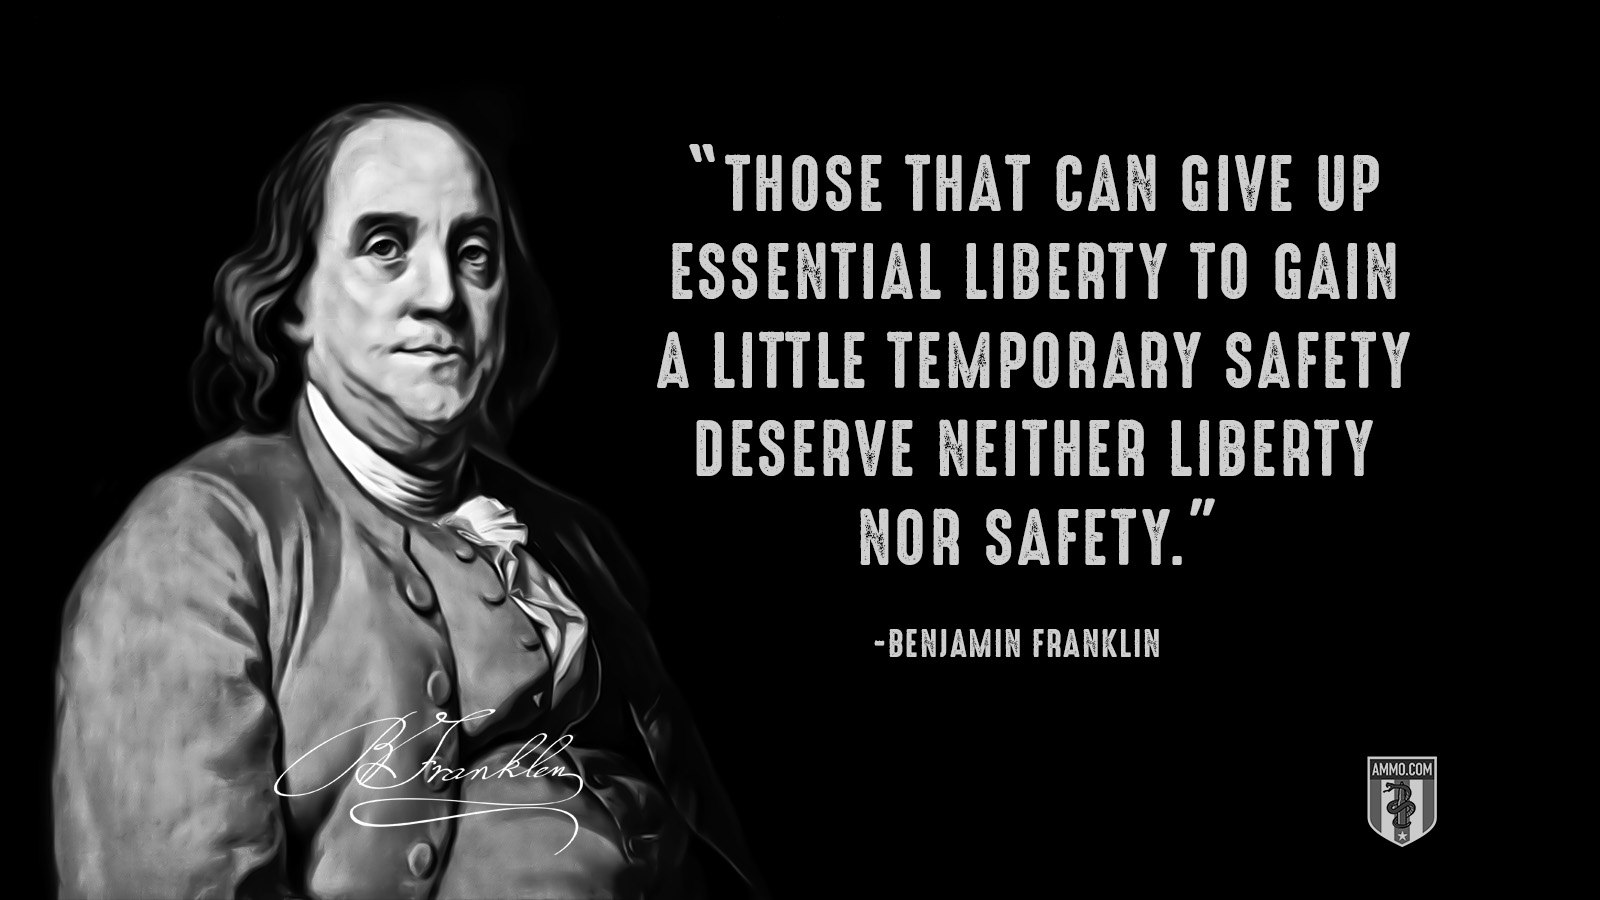 """Those that can give up essential liberty to gain a little temporary safety deserve neither liberty nor safety."" - Benjamin Franklin"